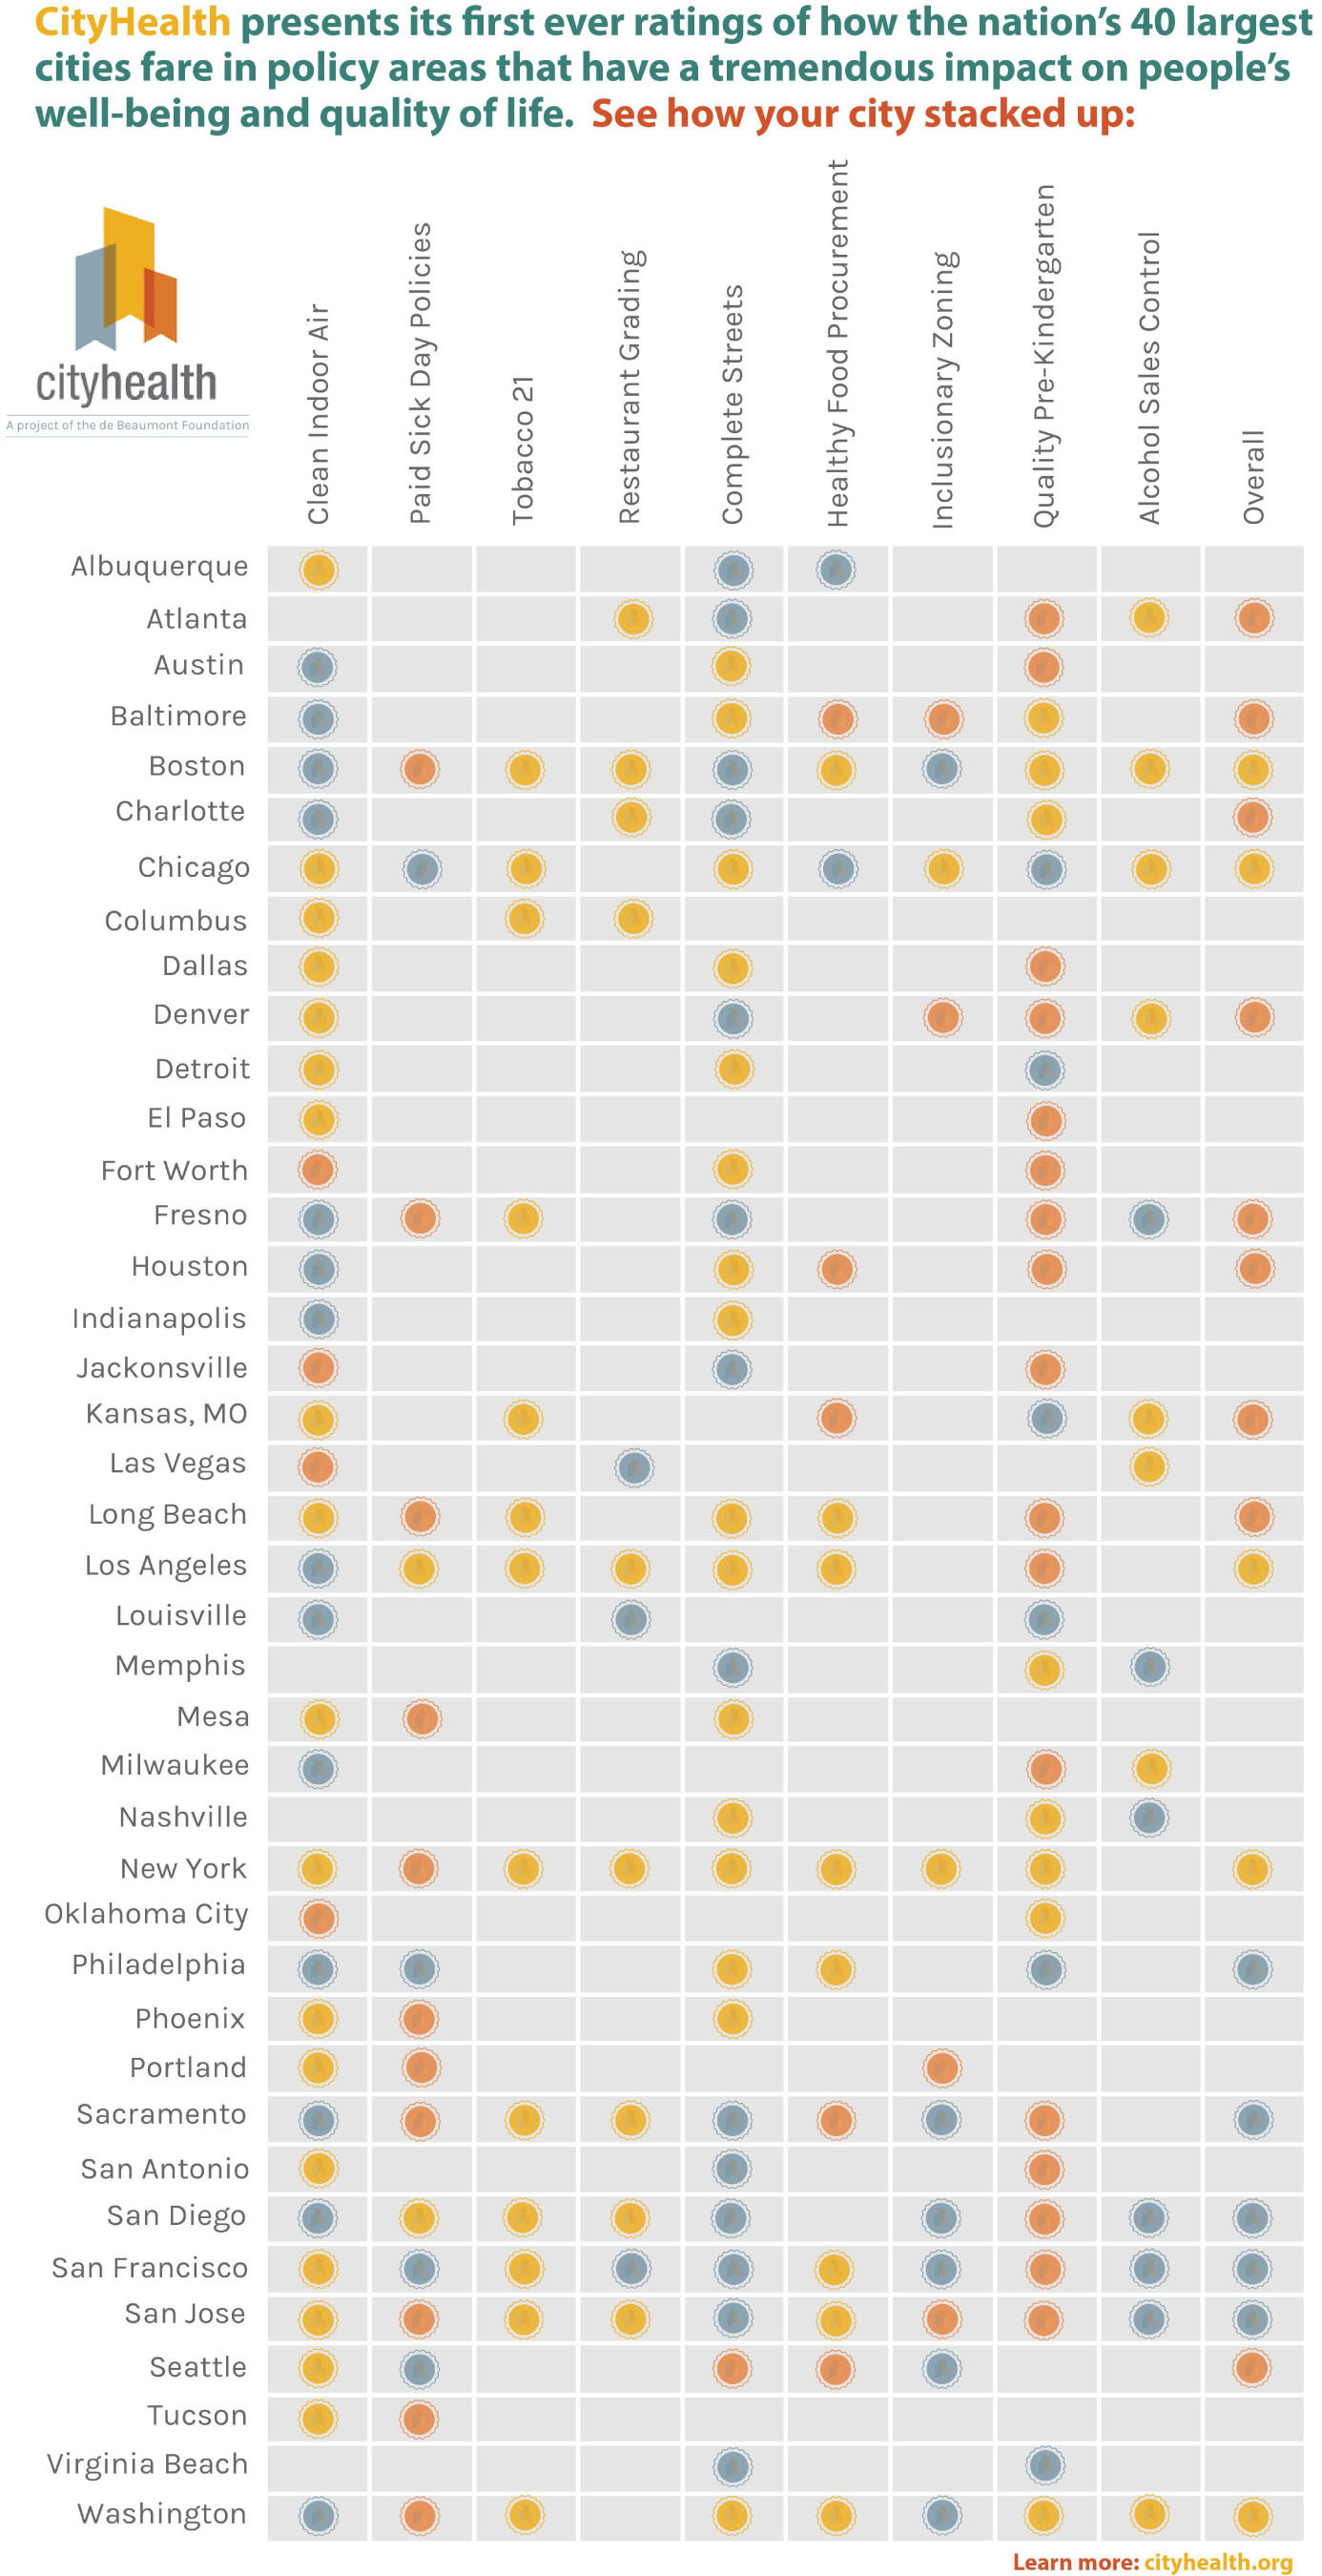 Full grid of cities, policies and the applicable medal ratings. Each city is rated on each of the nine policies (and given gold, silver, bronze or no medal for that policy) and an overall medal.